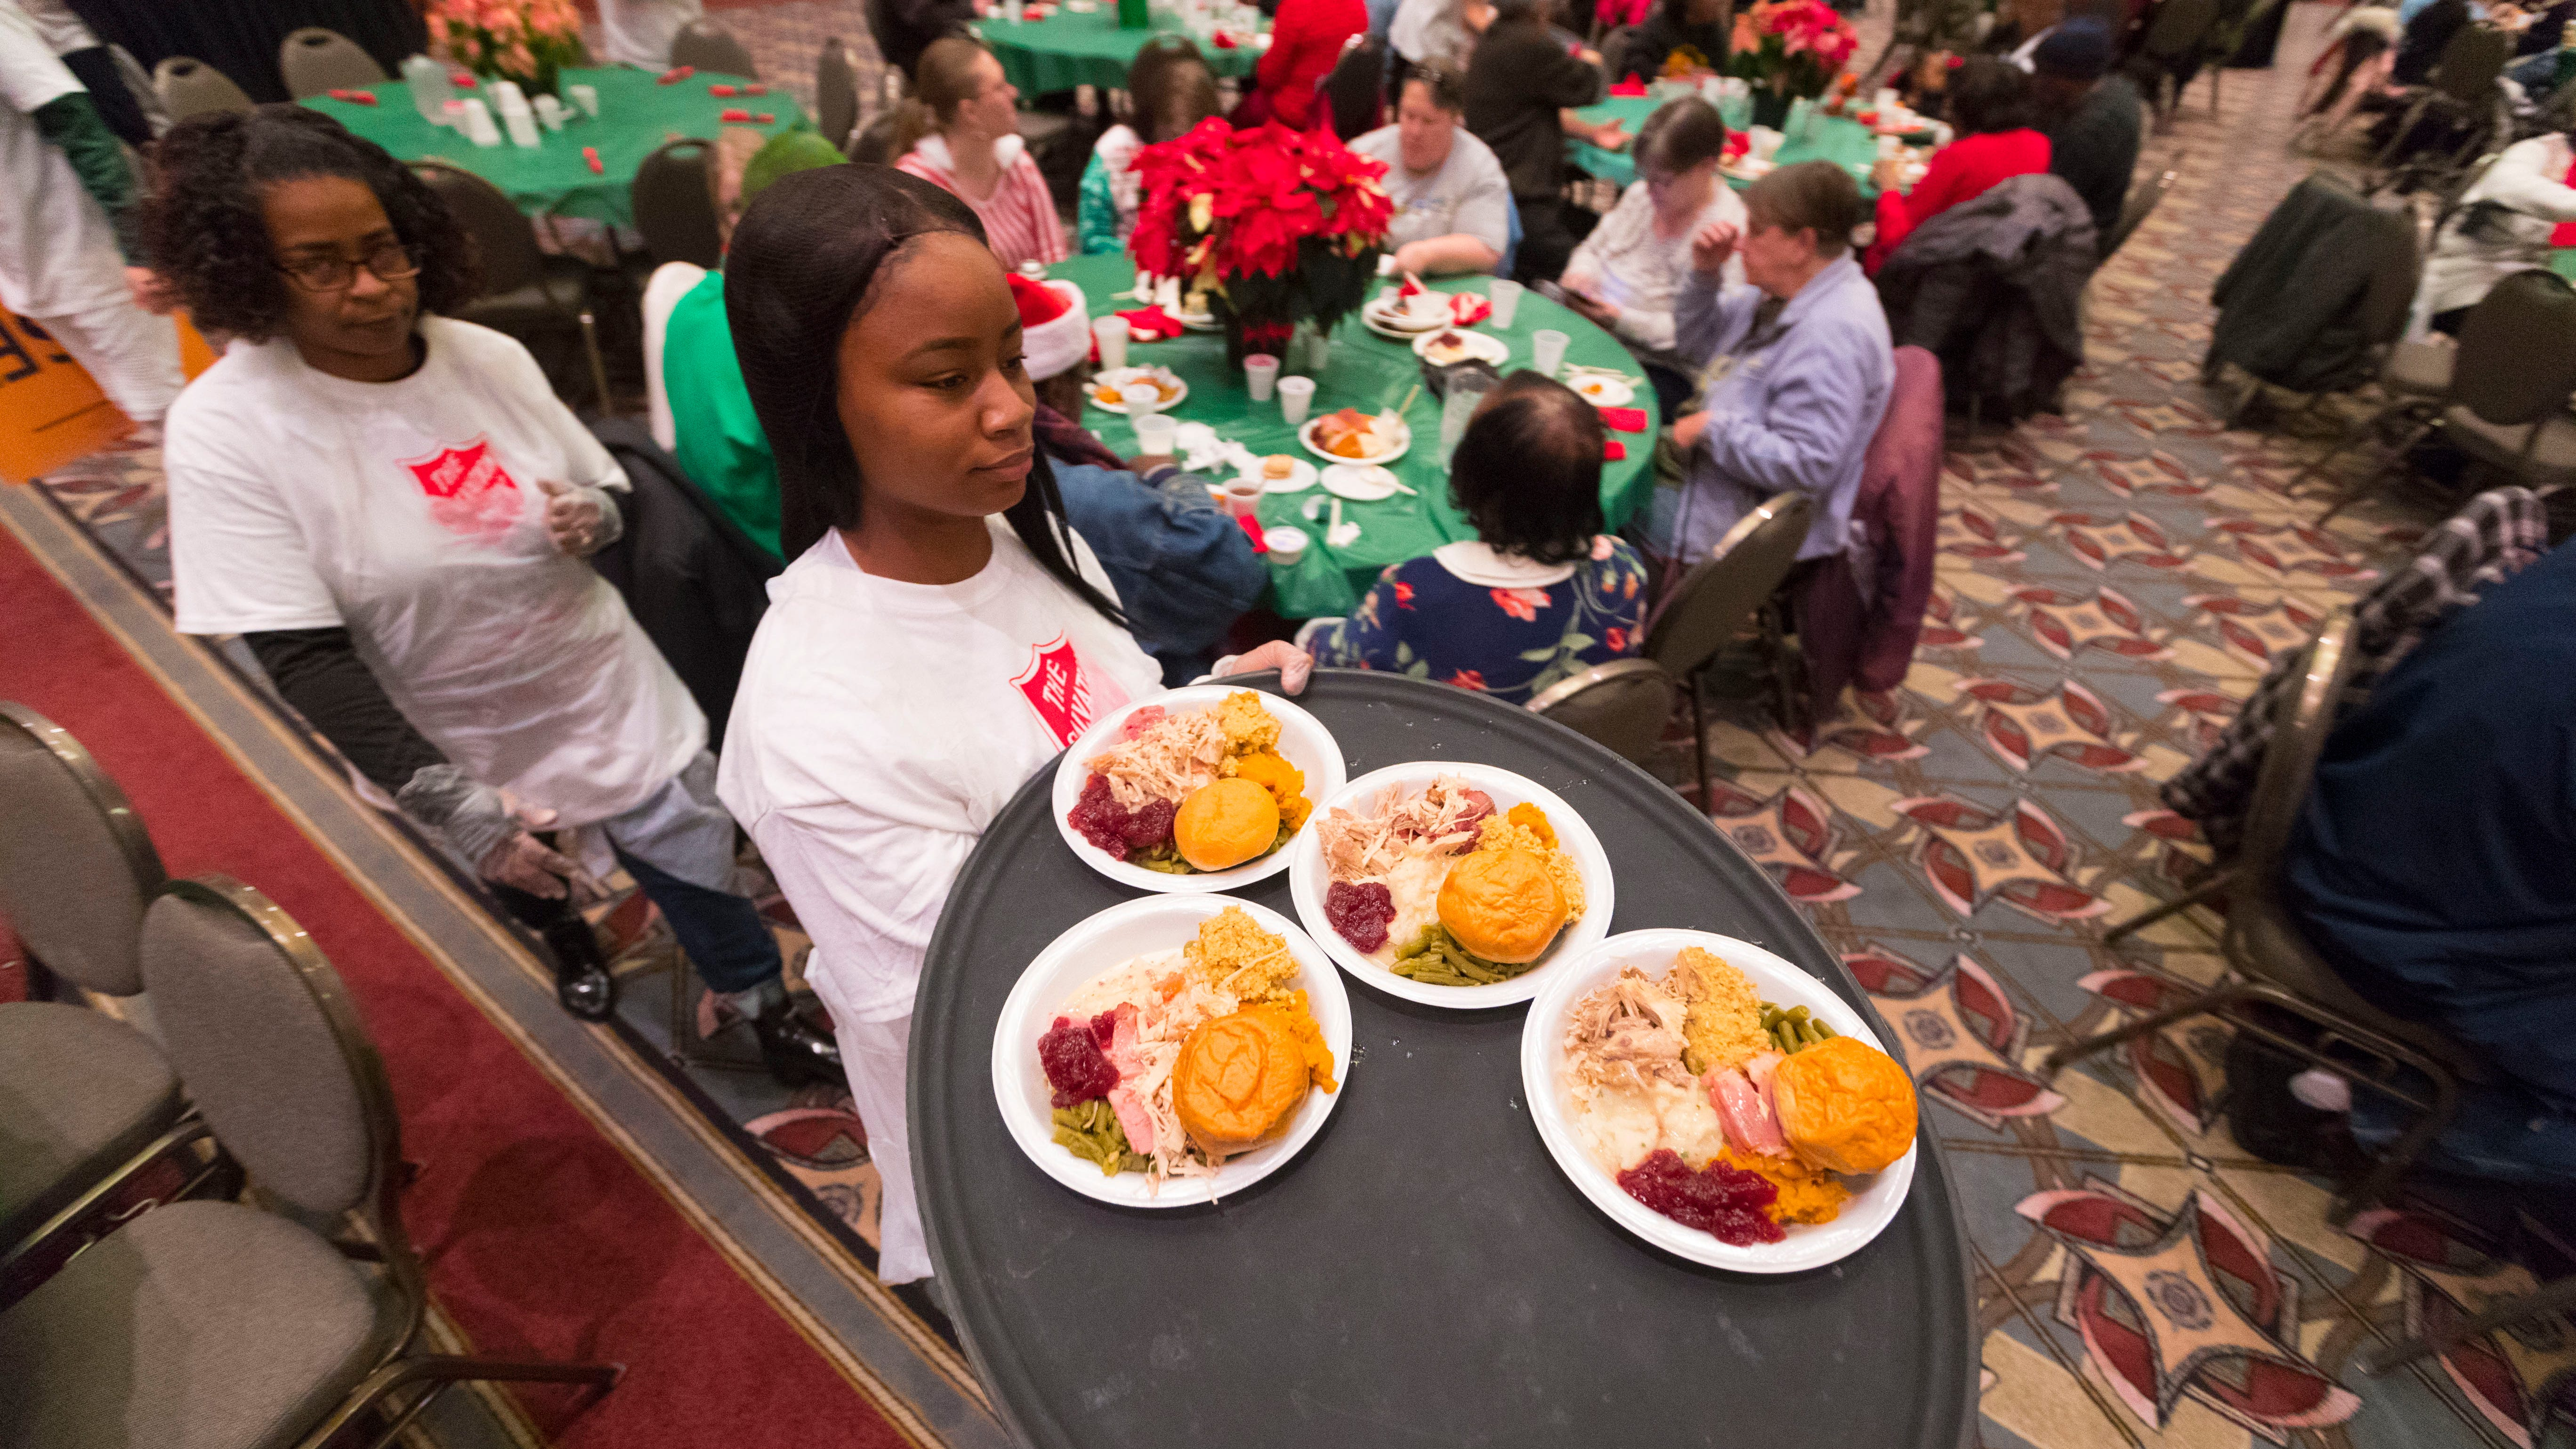 salvation army christmas family feast serves thousands in